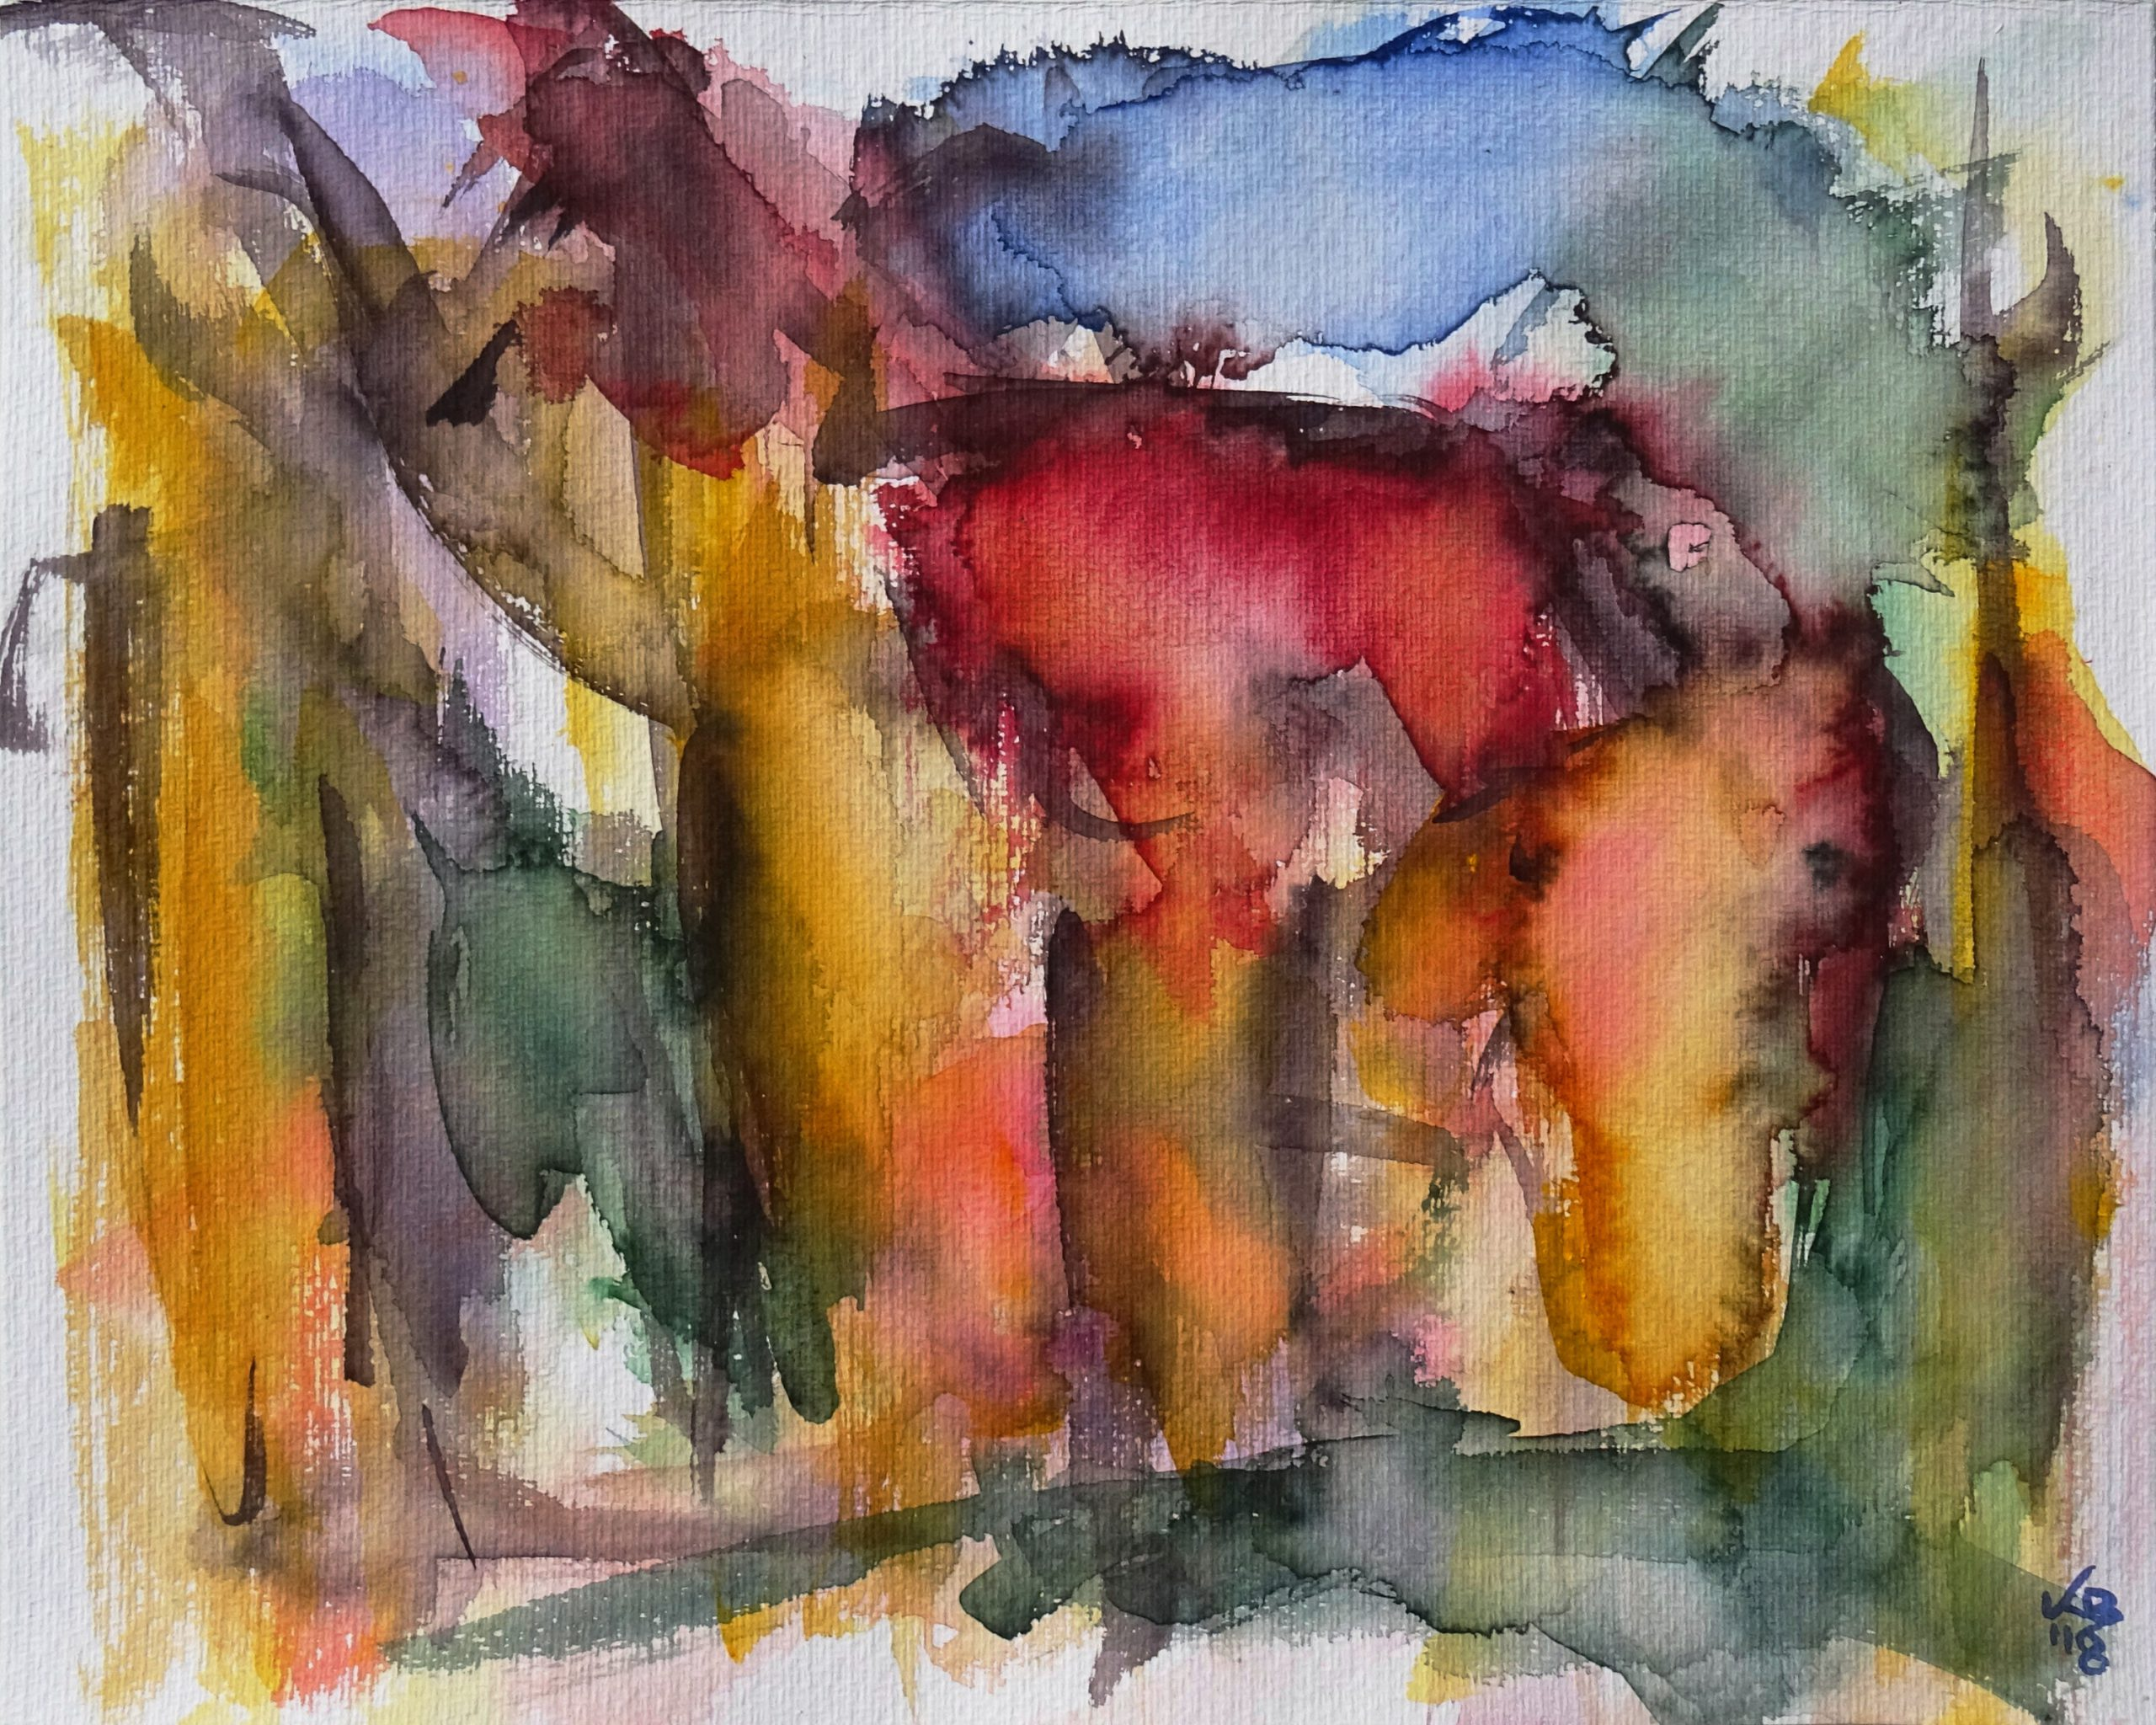 Salzgasse, Watercolour 50 x 40 cm, © 2018 by Klaus Bölling